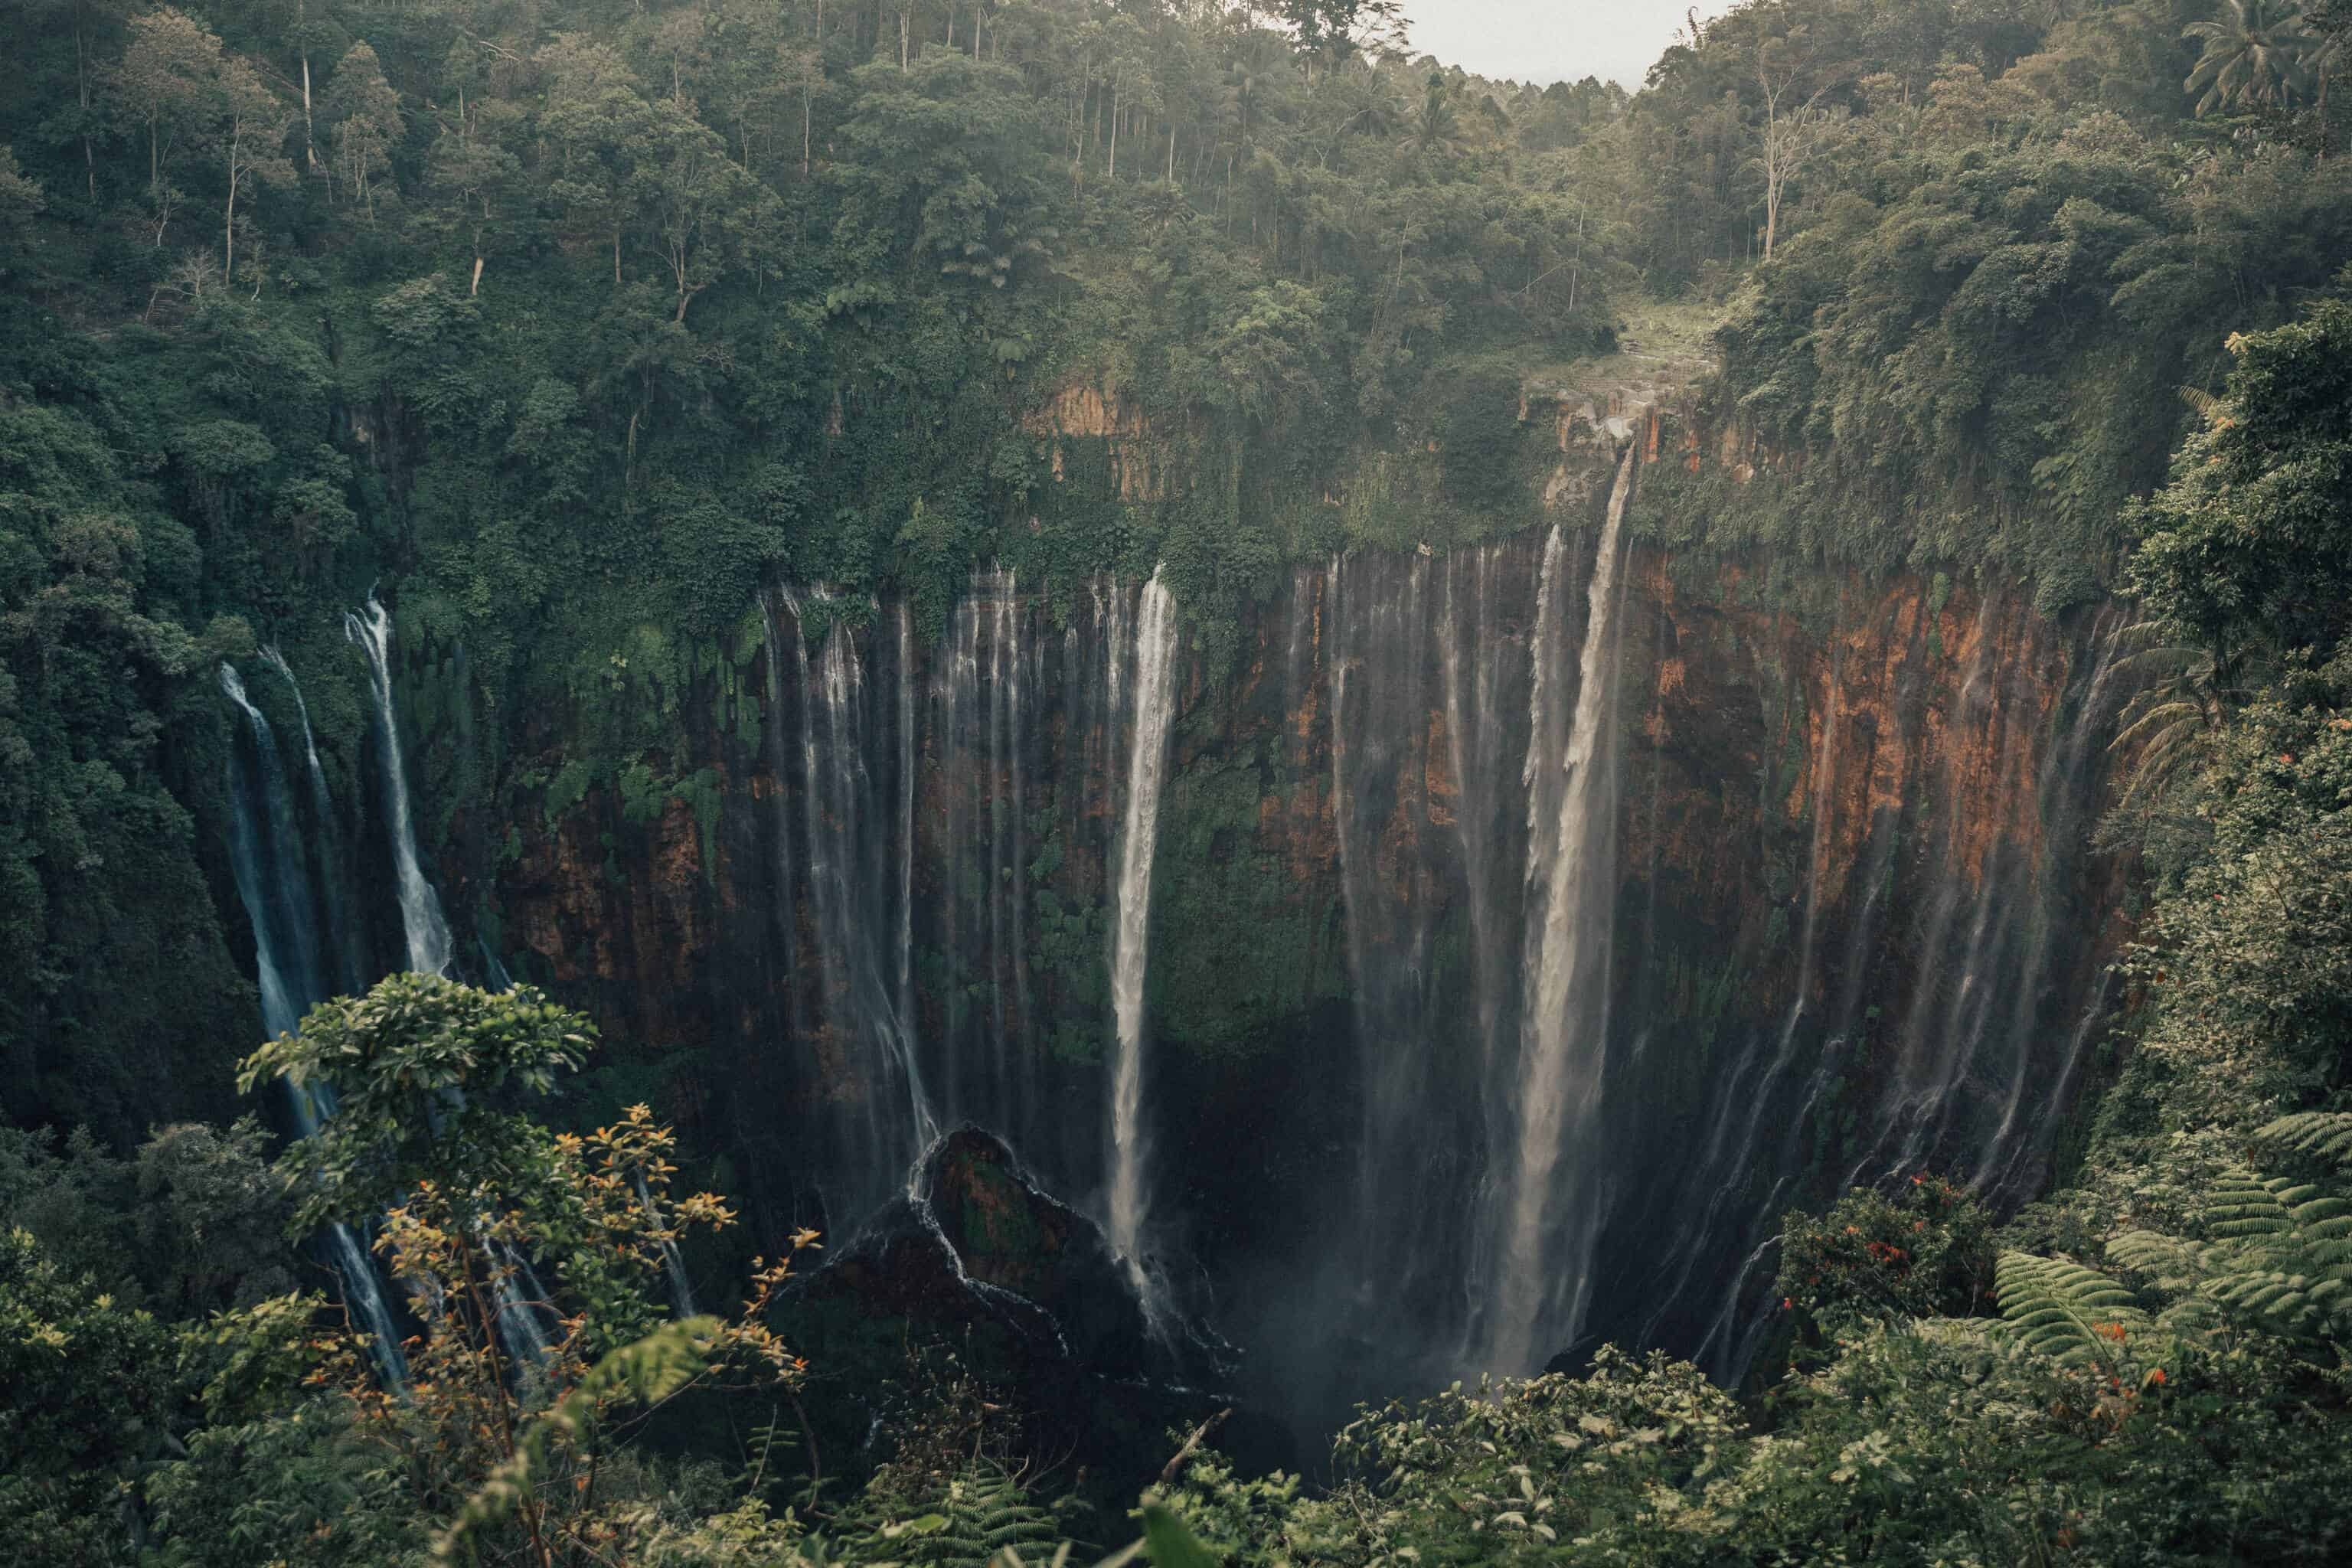 User submitted photo of Tumpak Sewu Waterfall